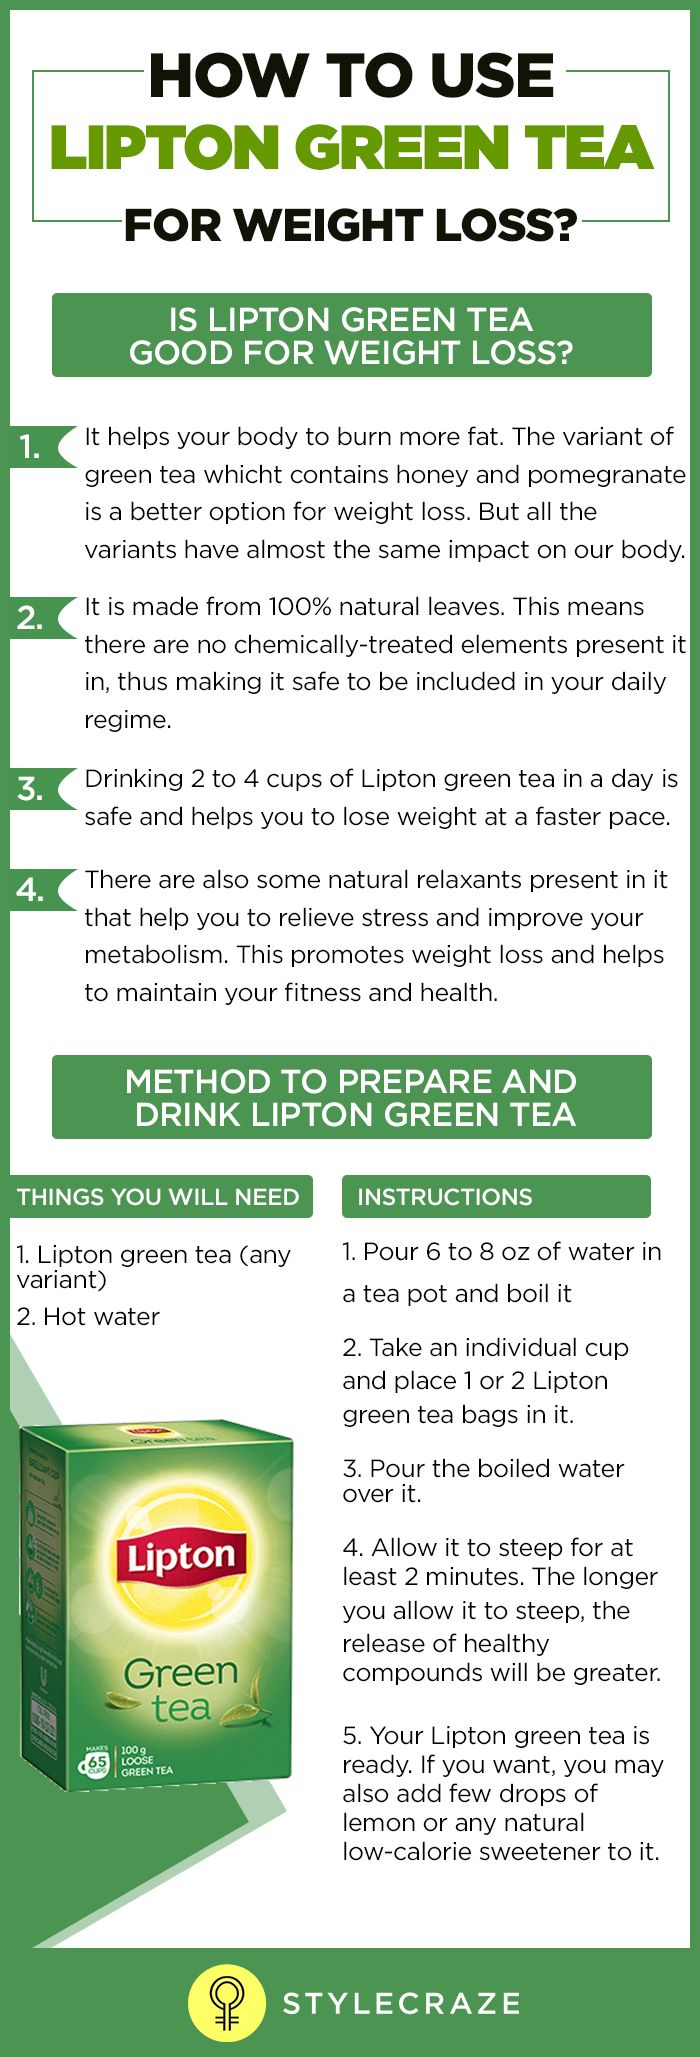 how to use lipton green tea for weight loss | weight loss